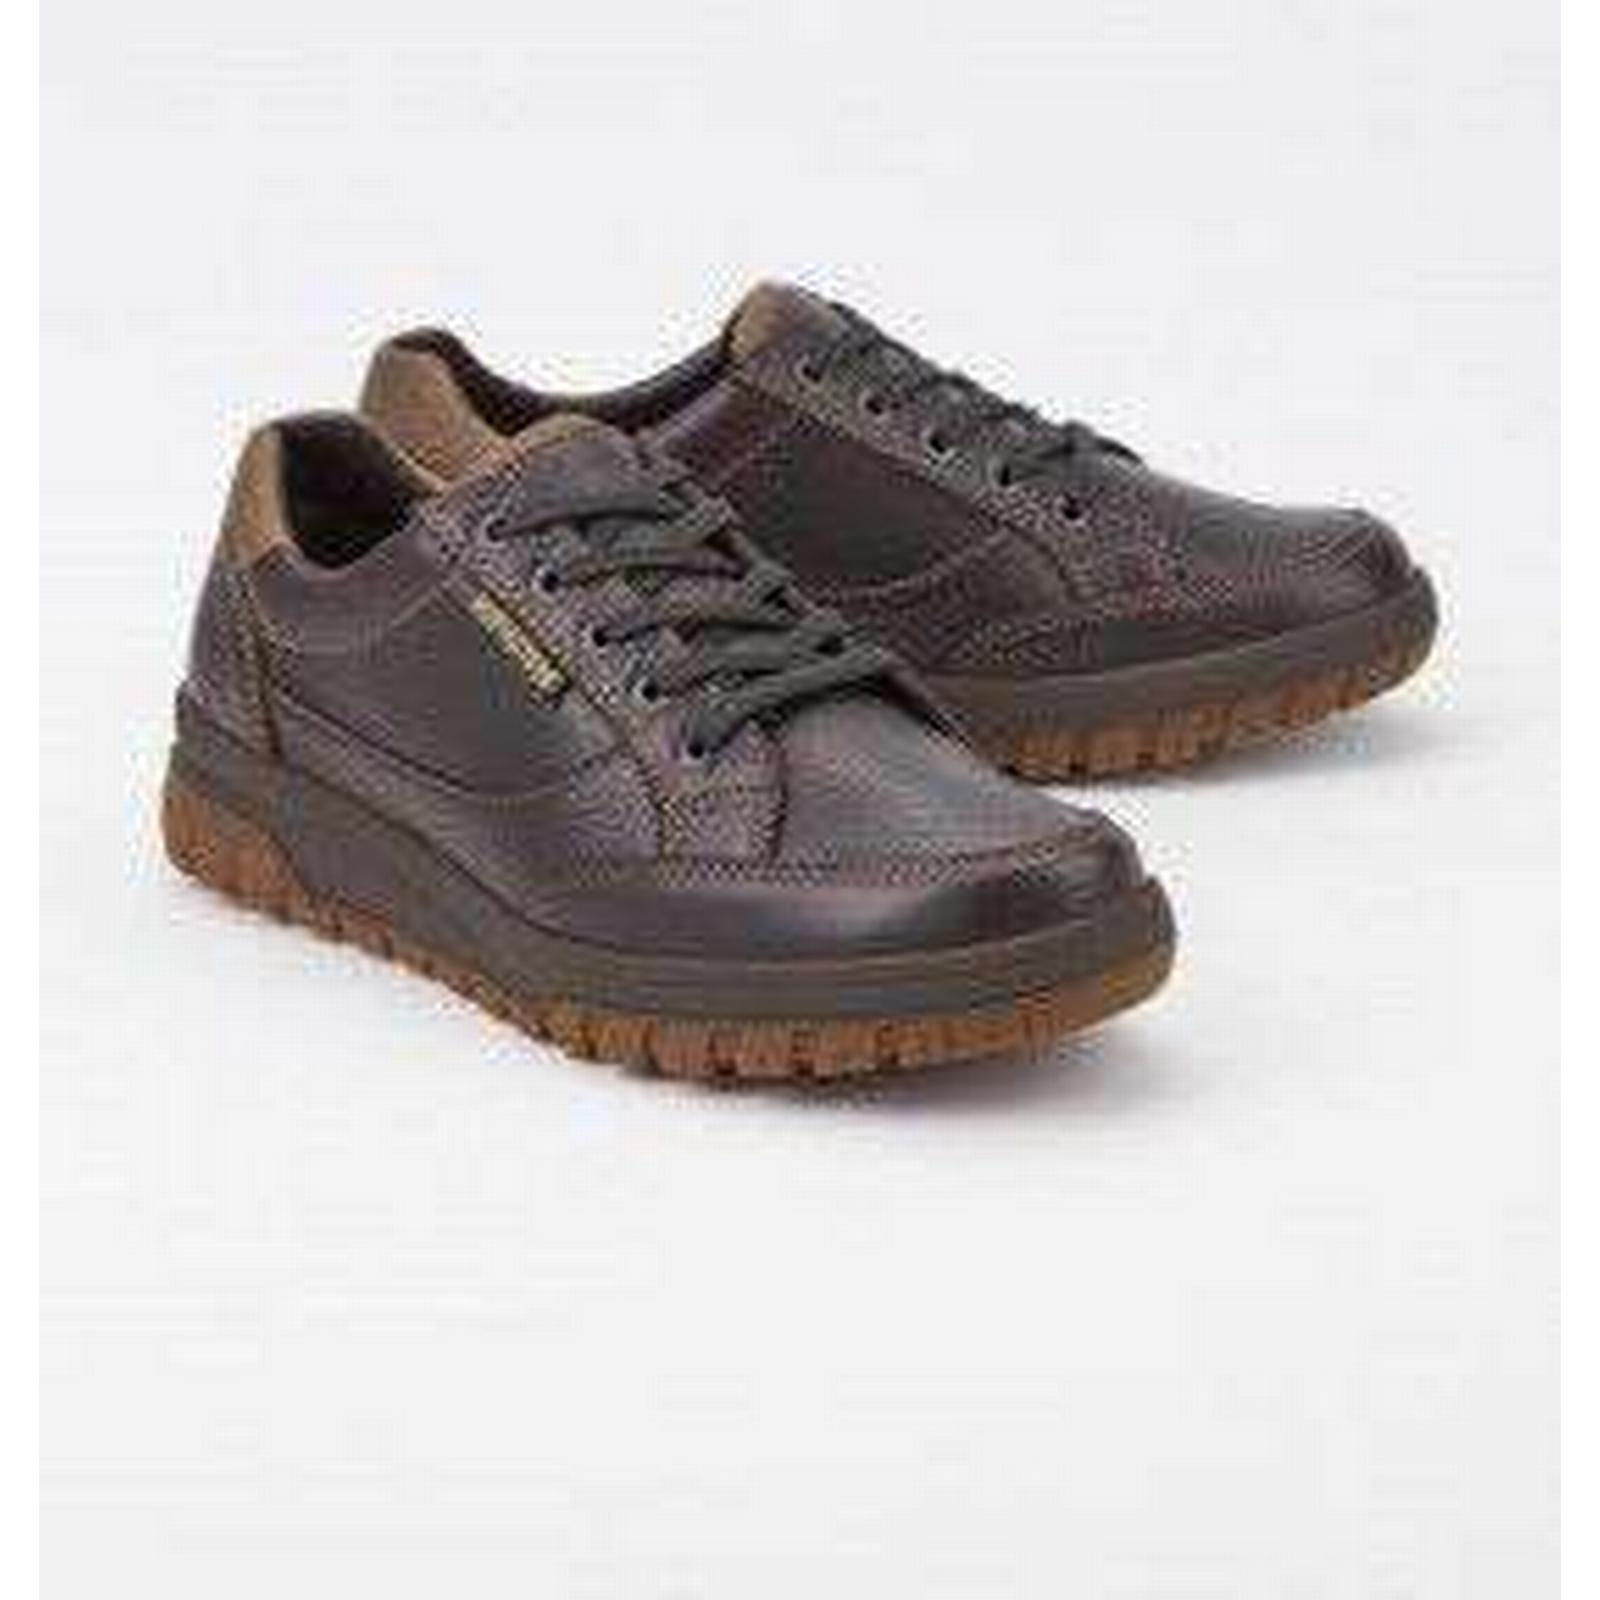 Mephisto 'PACO' Brown Leather STOCK - 8.5 OUT OF STOCK Leather a5fa92